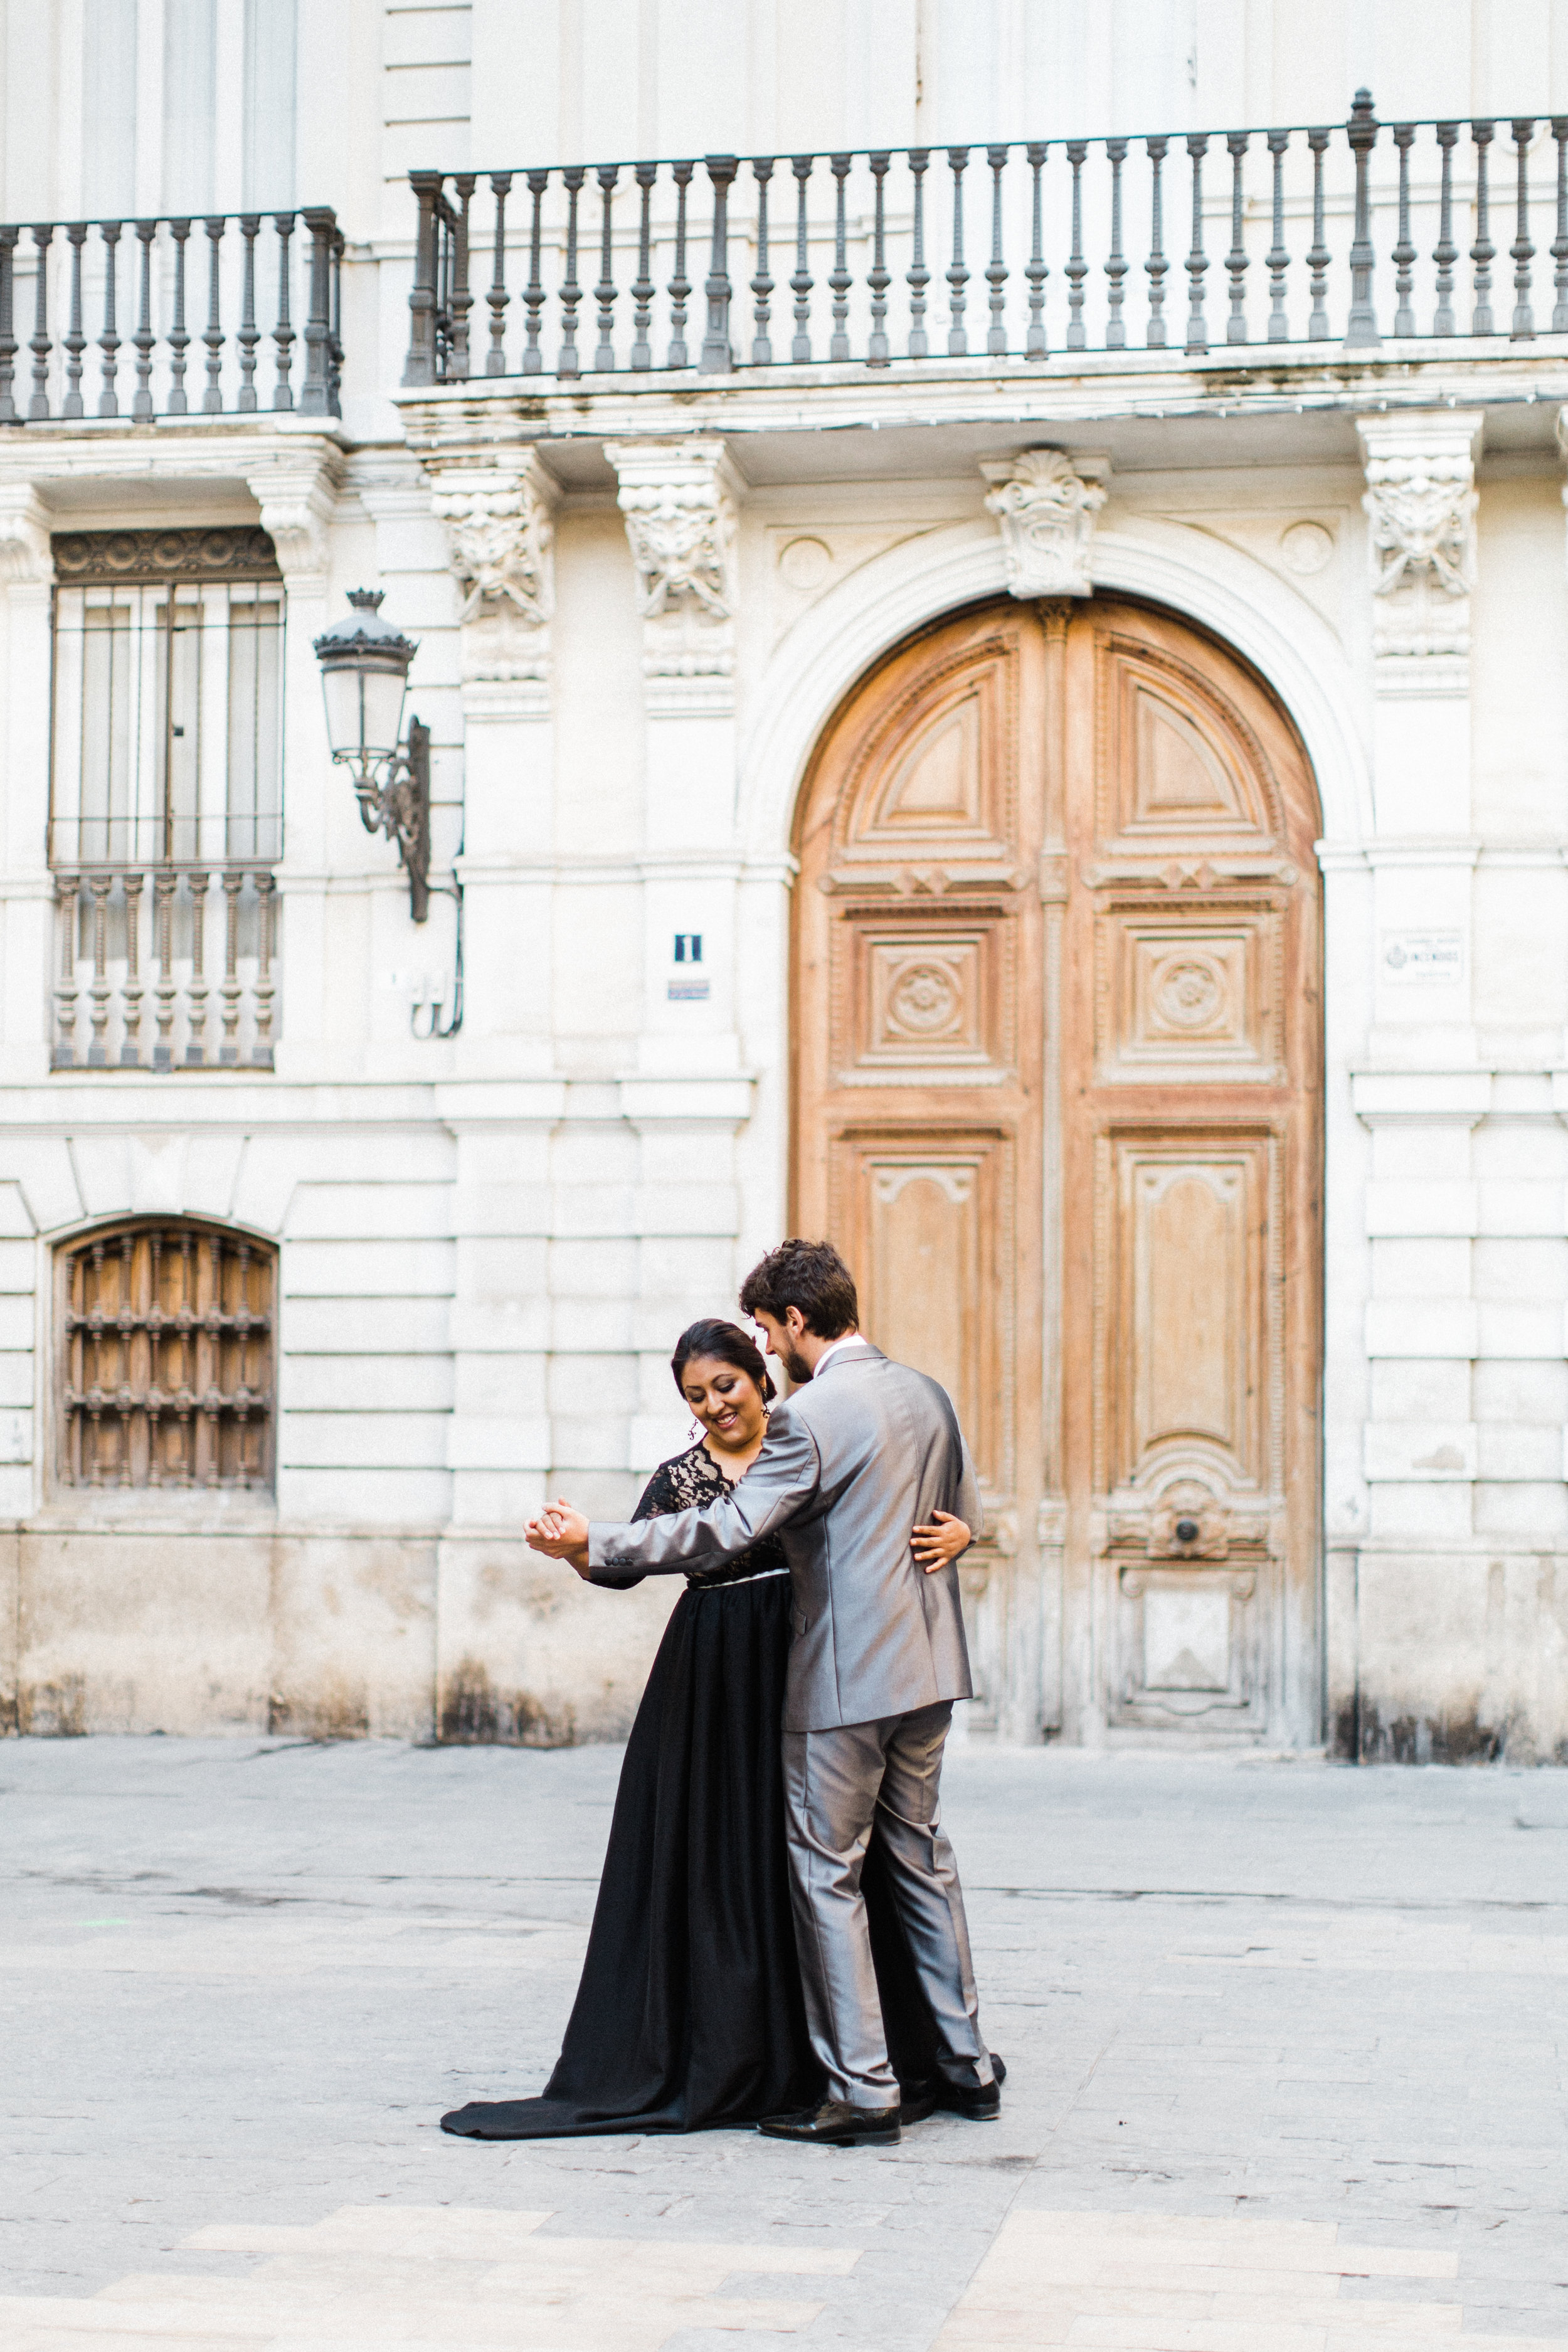 Four Corners Photography Gerson and Jenny Valencia Spain-41.jpg